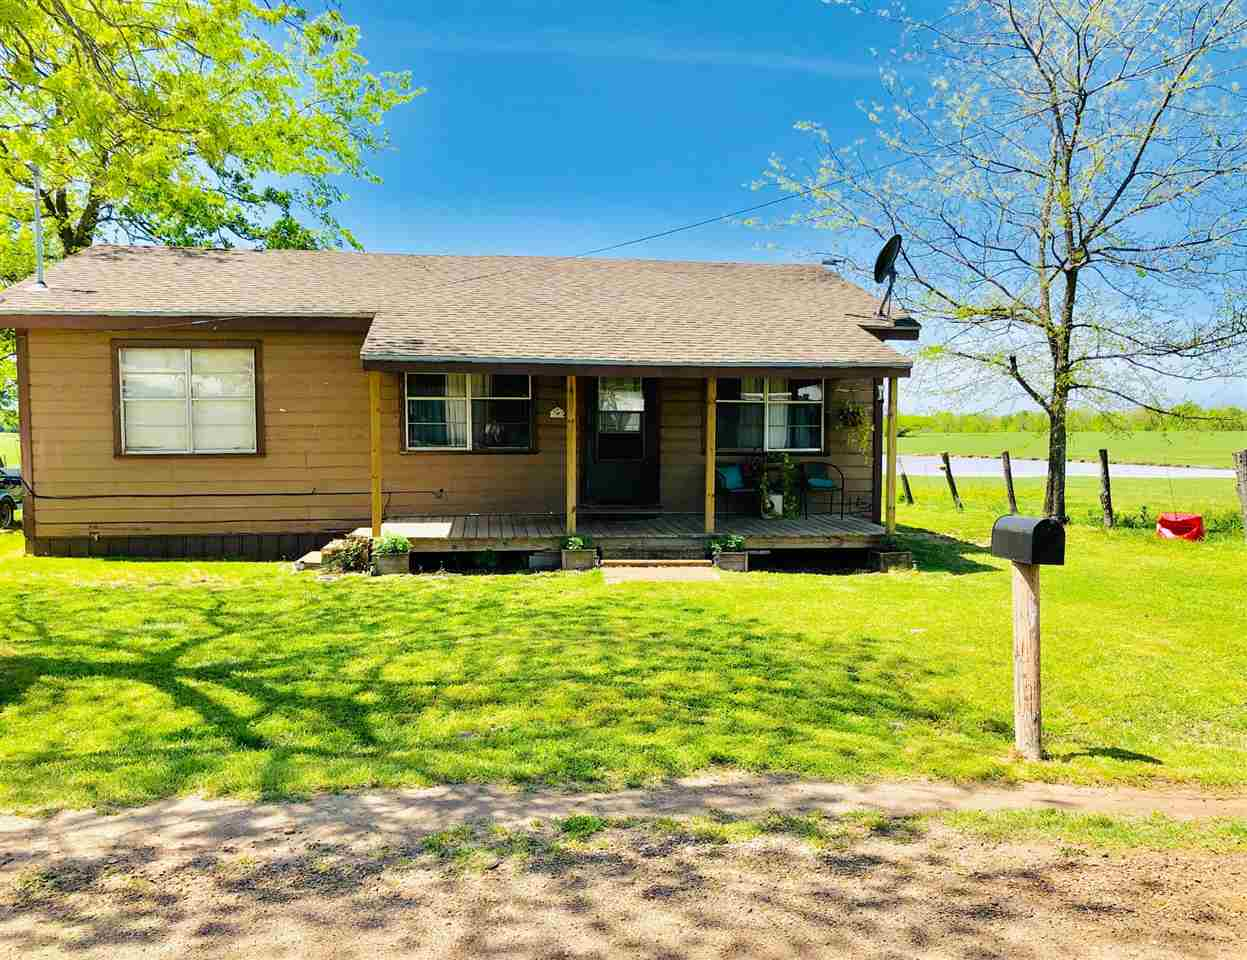 Coldwell Banker Regional Realty - Residential, Farm, Ranches